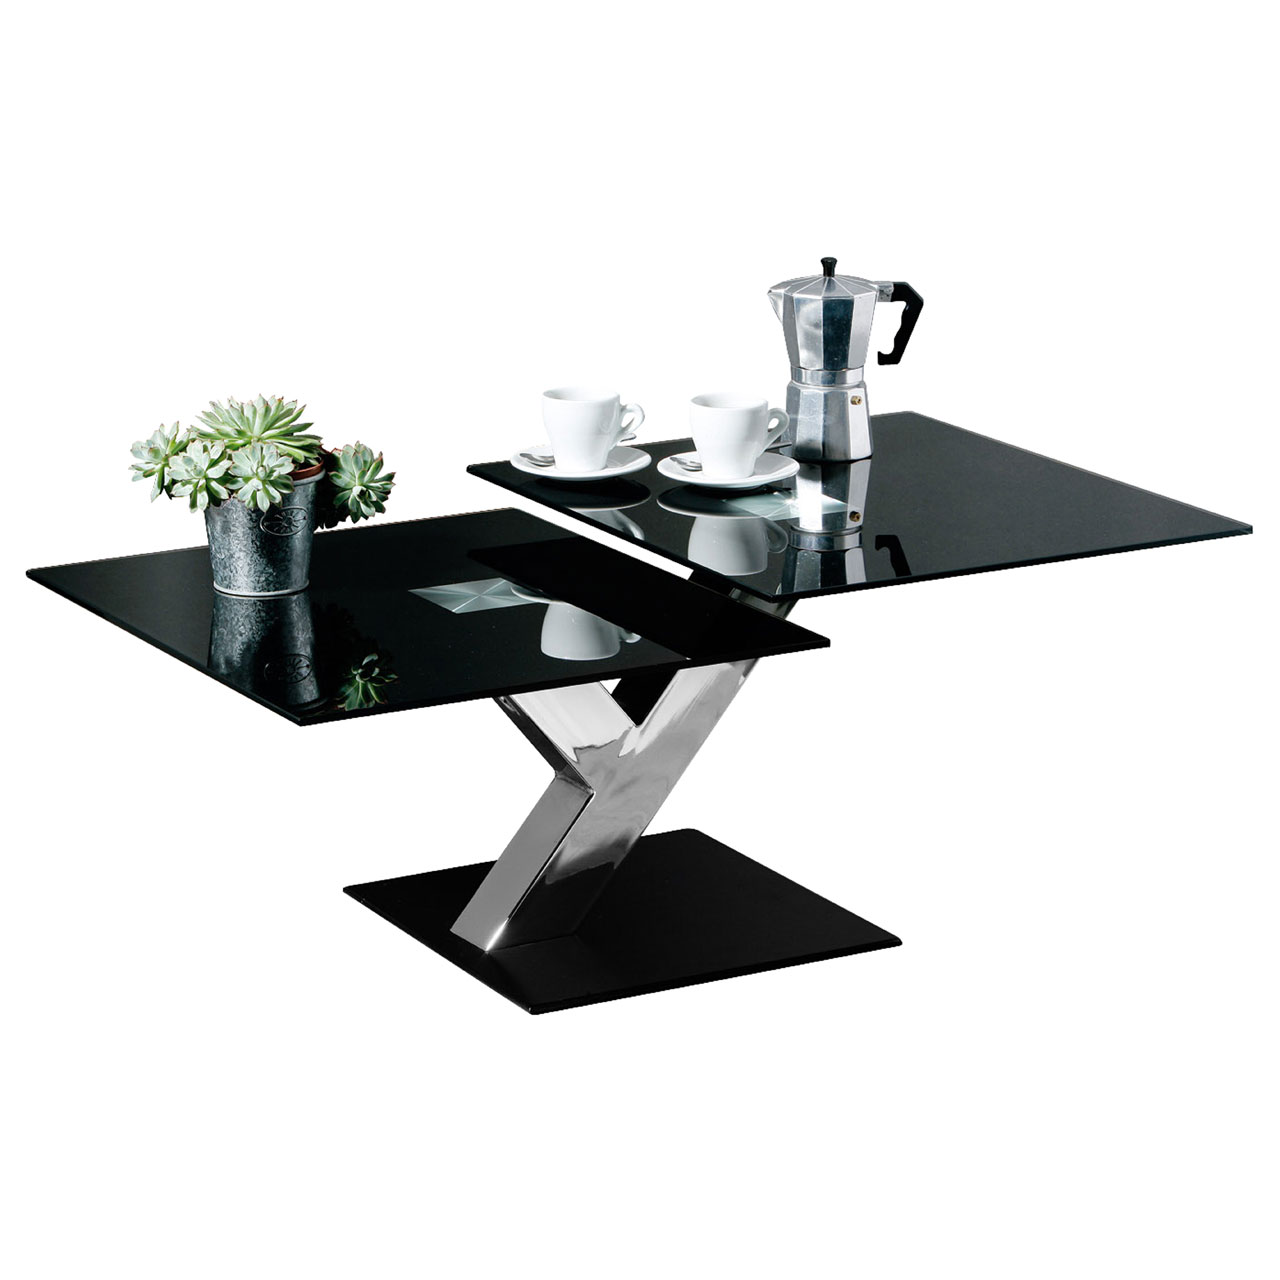 Stylish 2 Section Black Glass Coffee Feature Table Tempered Chrome Finish Leg Ebay